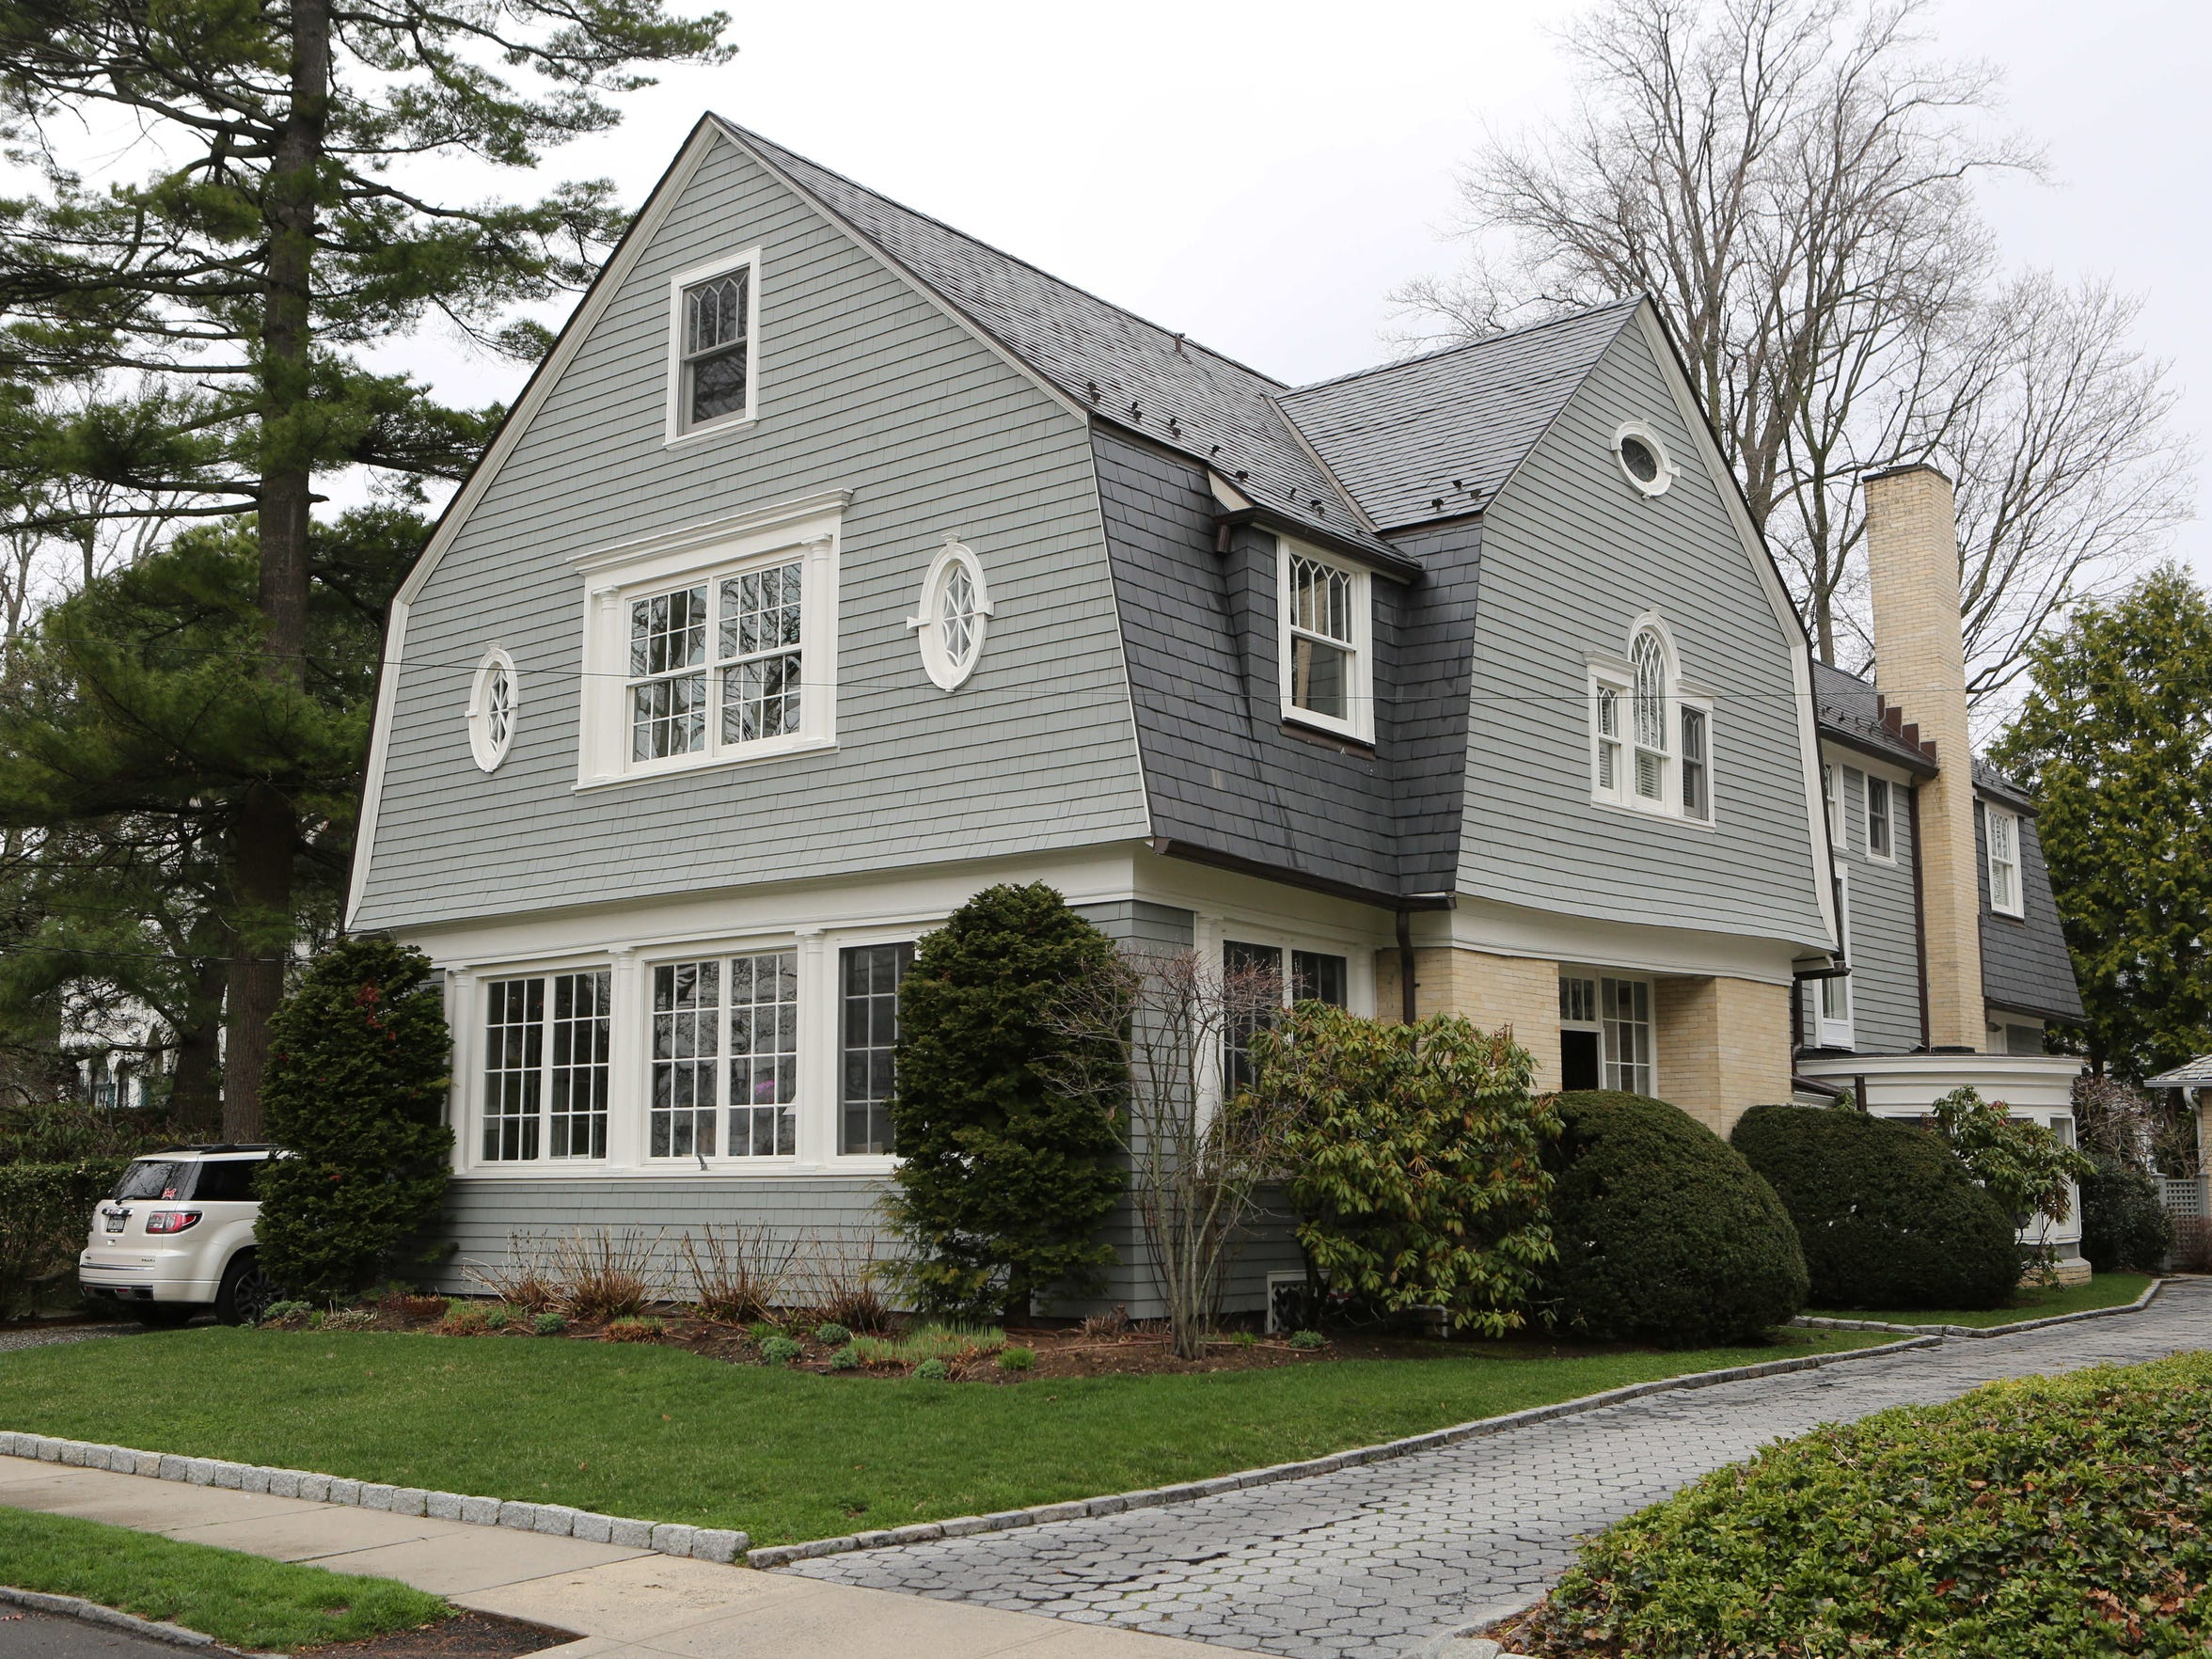 This house on Park Avenue is part of the 2015 Larchmont